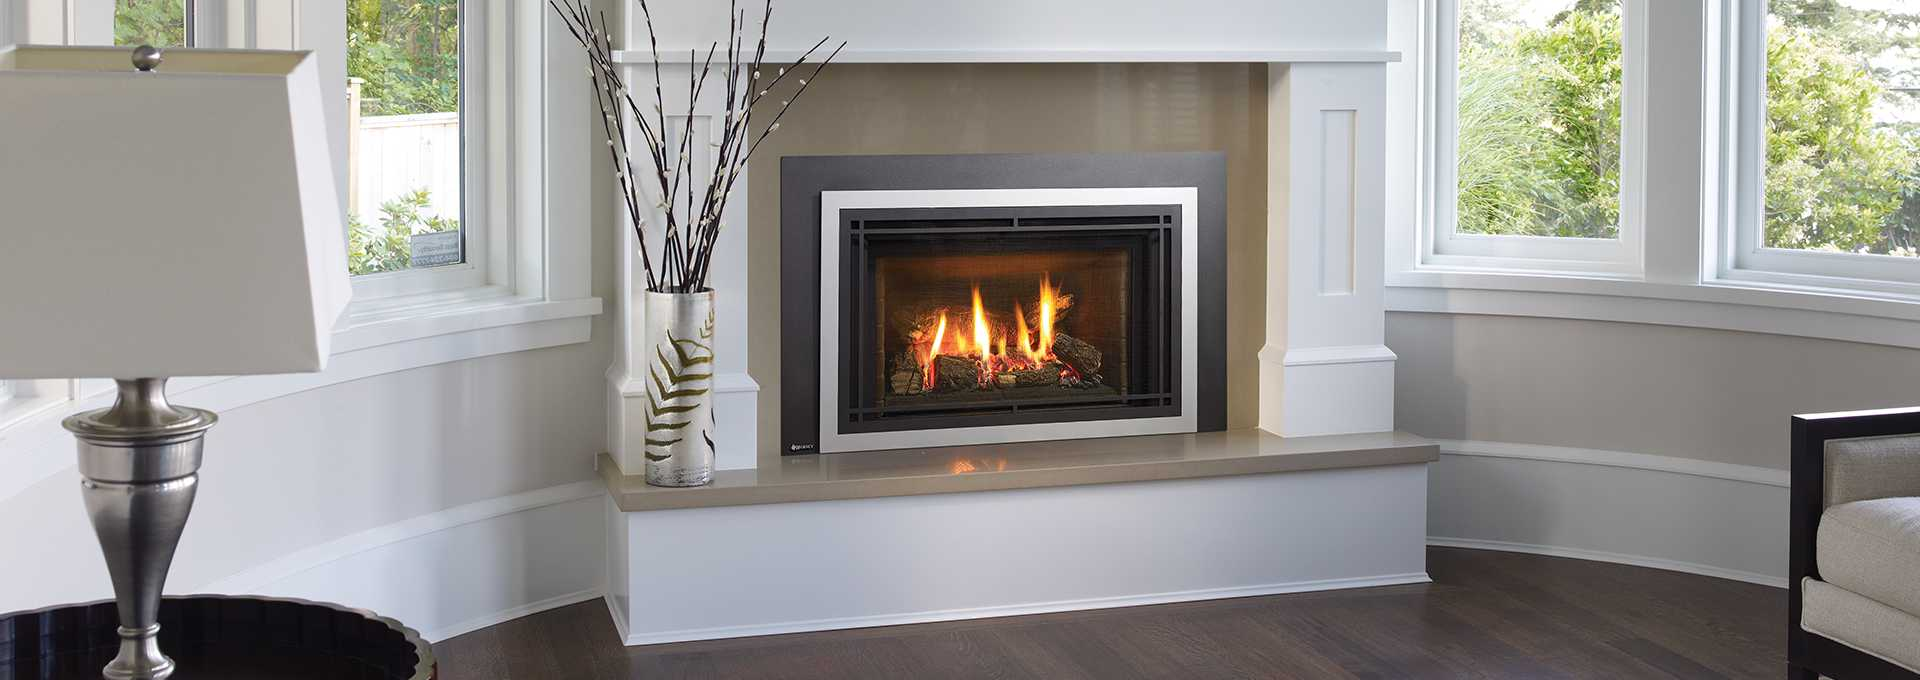 Propane Fireplace Inserts Top 11 Gas Fireplace Insert Trends Of 2018